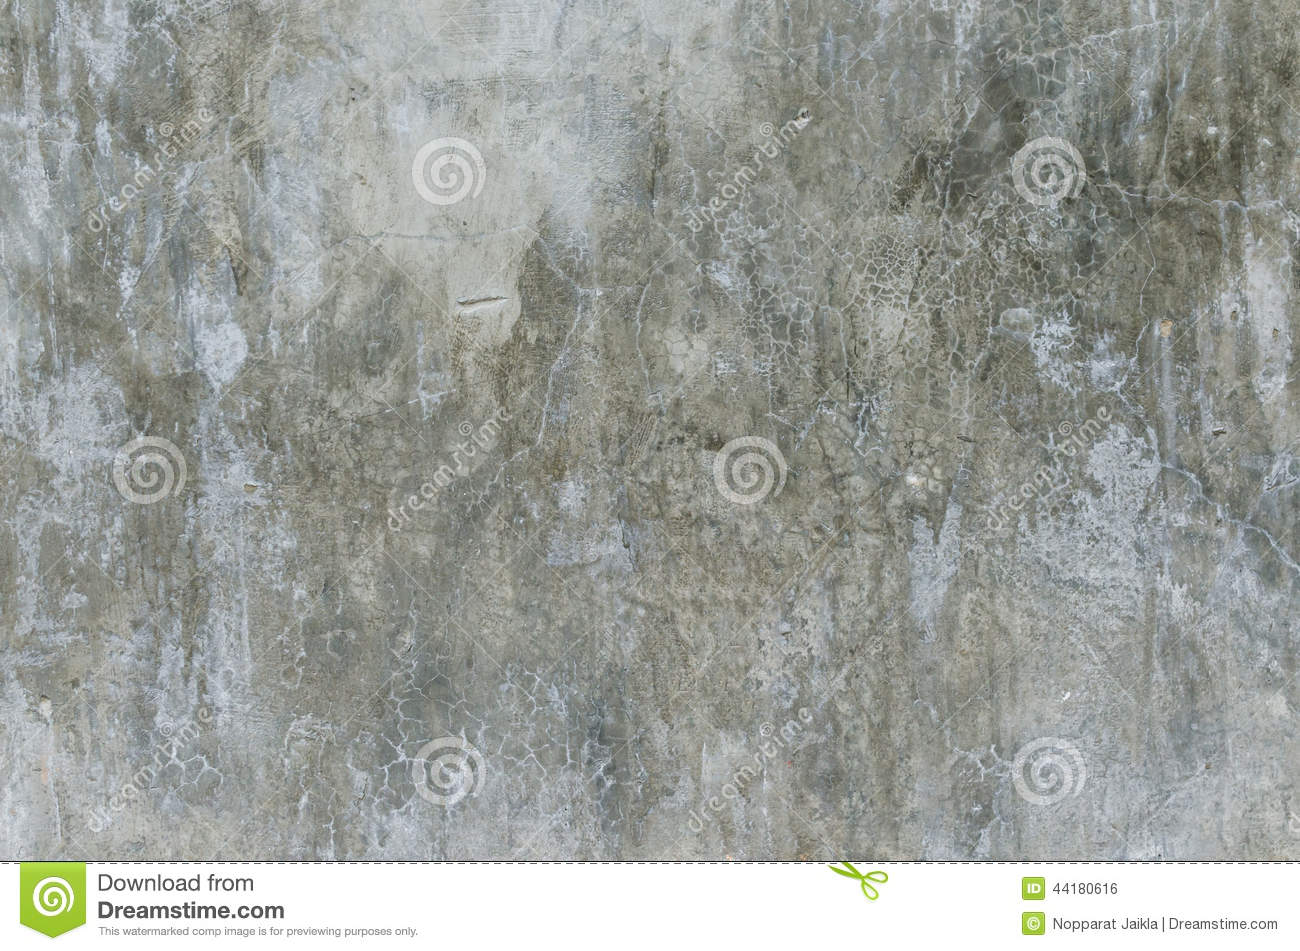 Old concrete wall background and texture